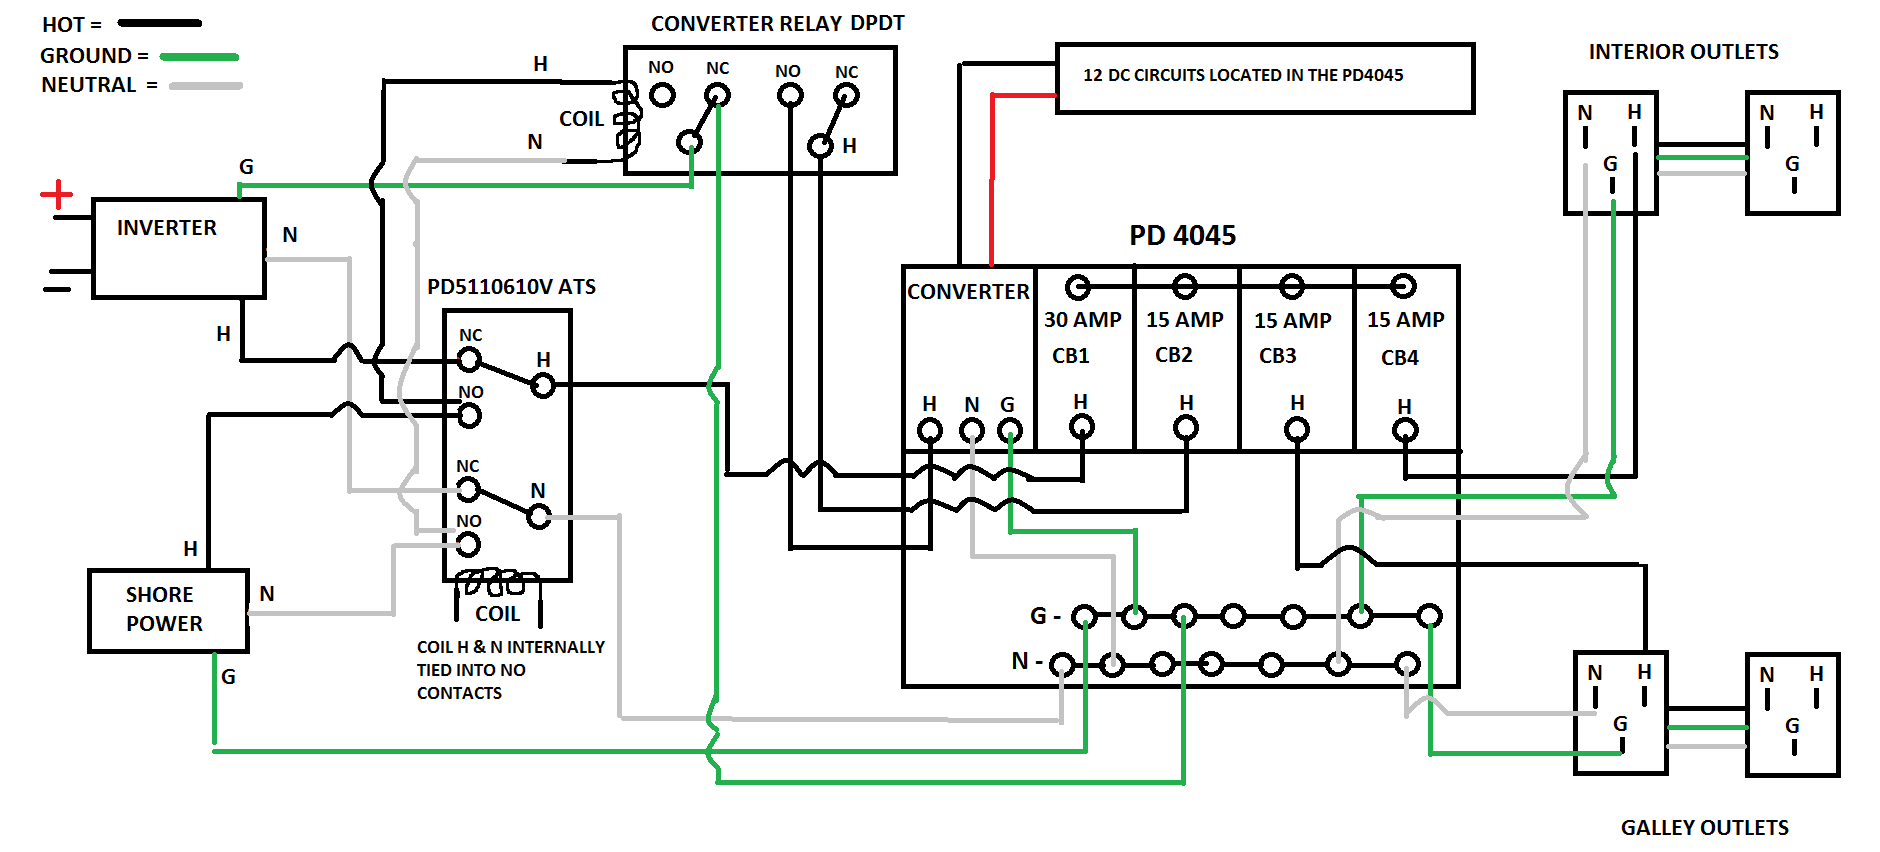 PD 4045 WIRING 1.png